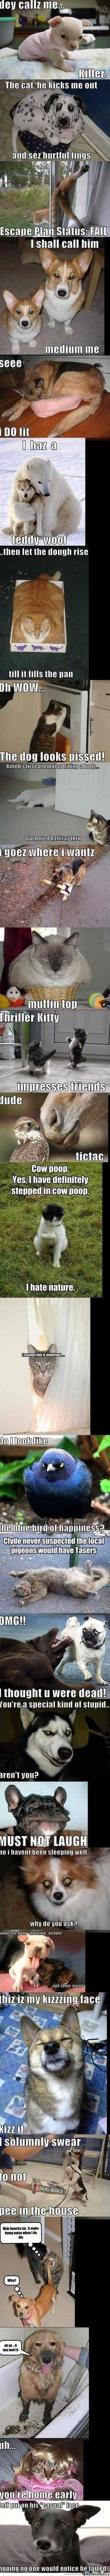 Usually I don't like the animal caption pics, but these captions are silly! Lol